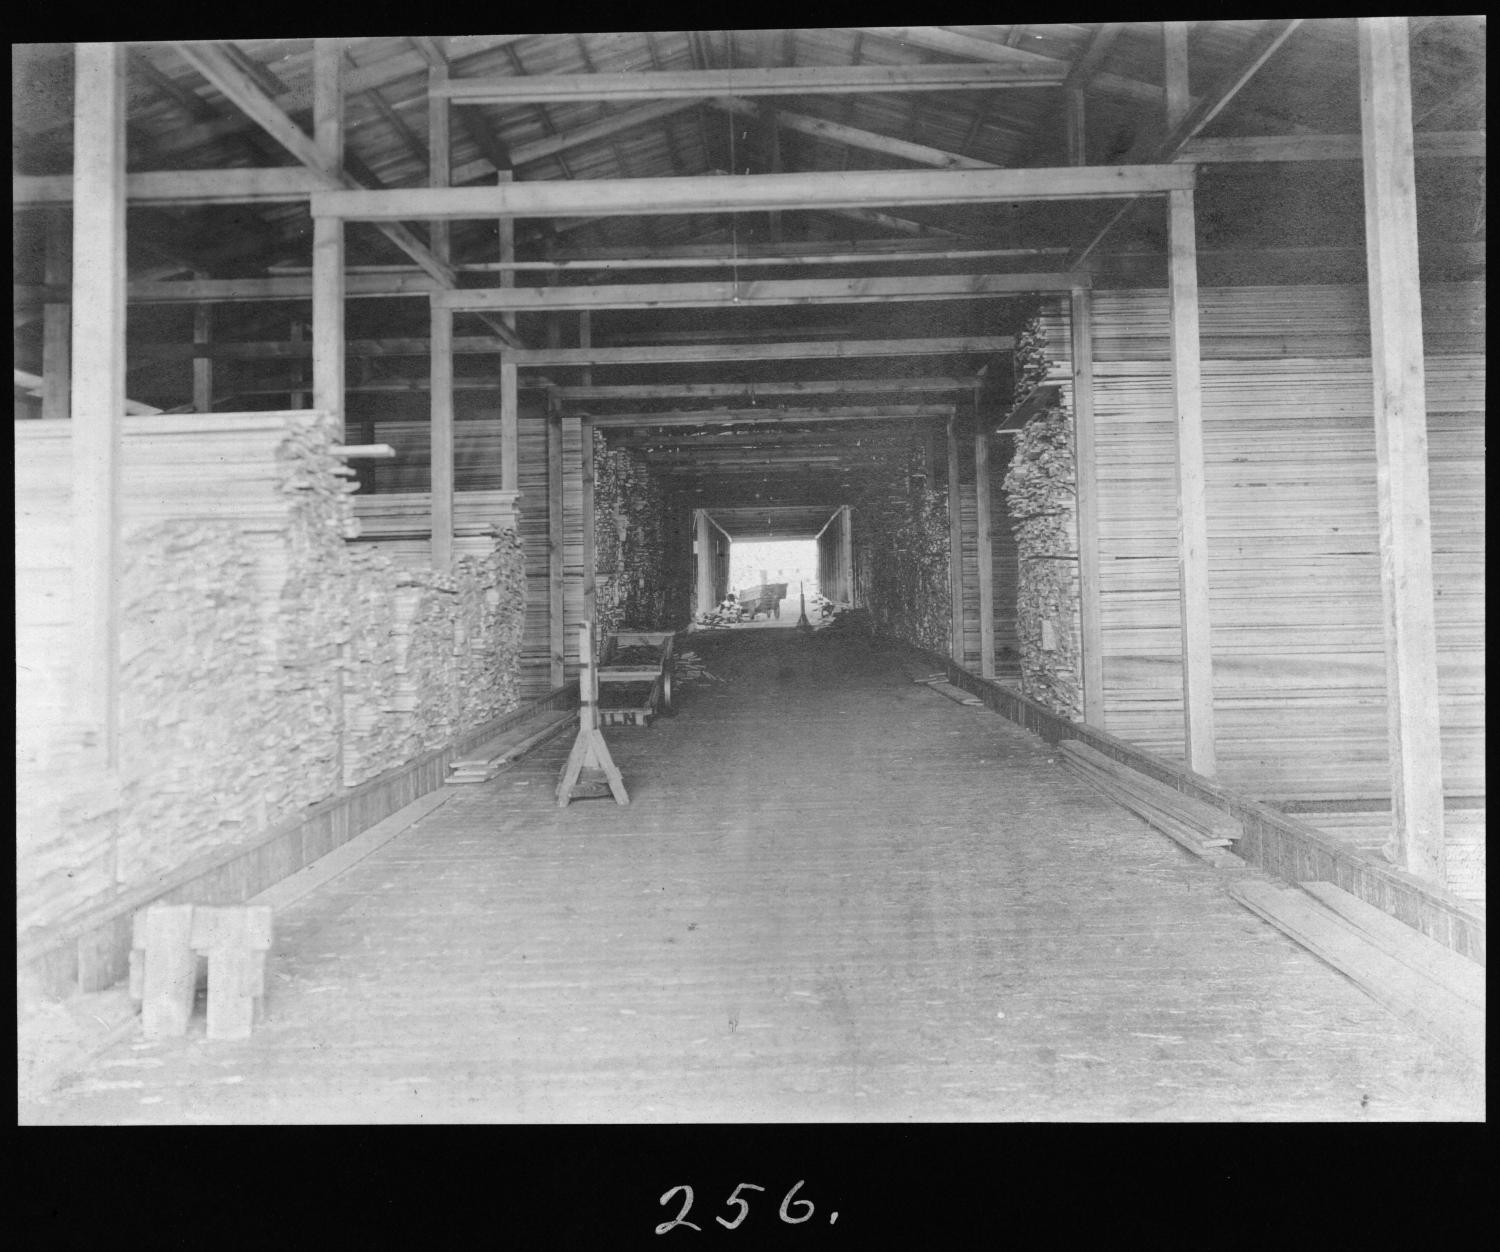 S. P. 256 Rough Lumber Shed Interior